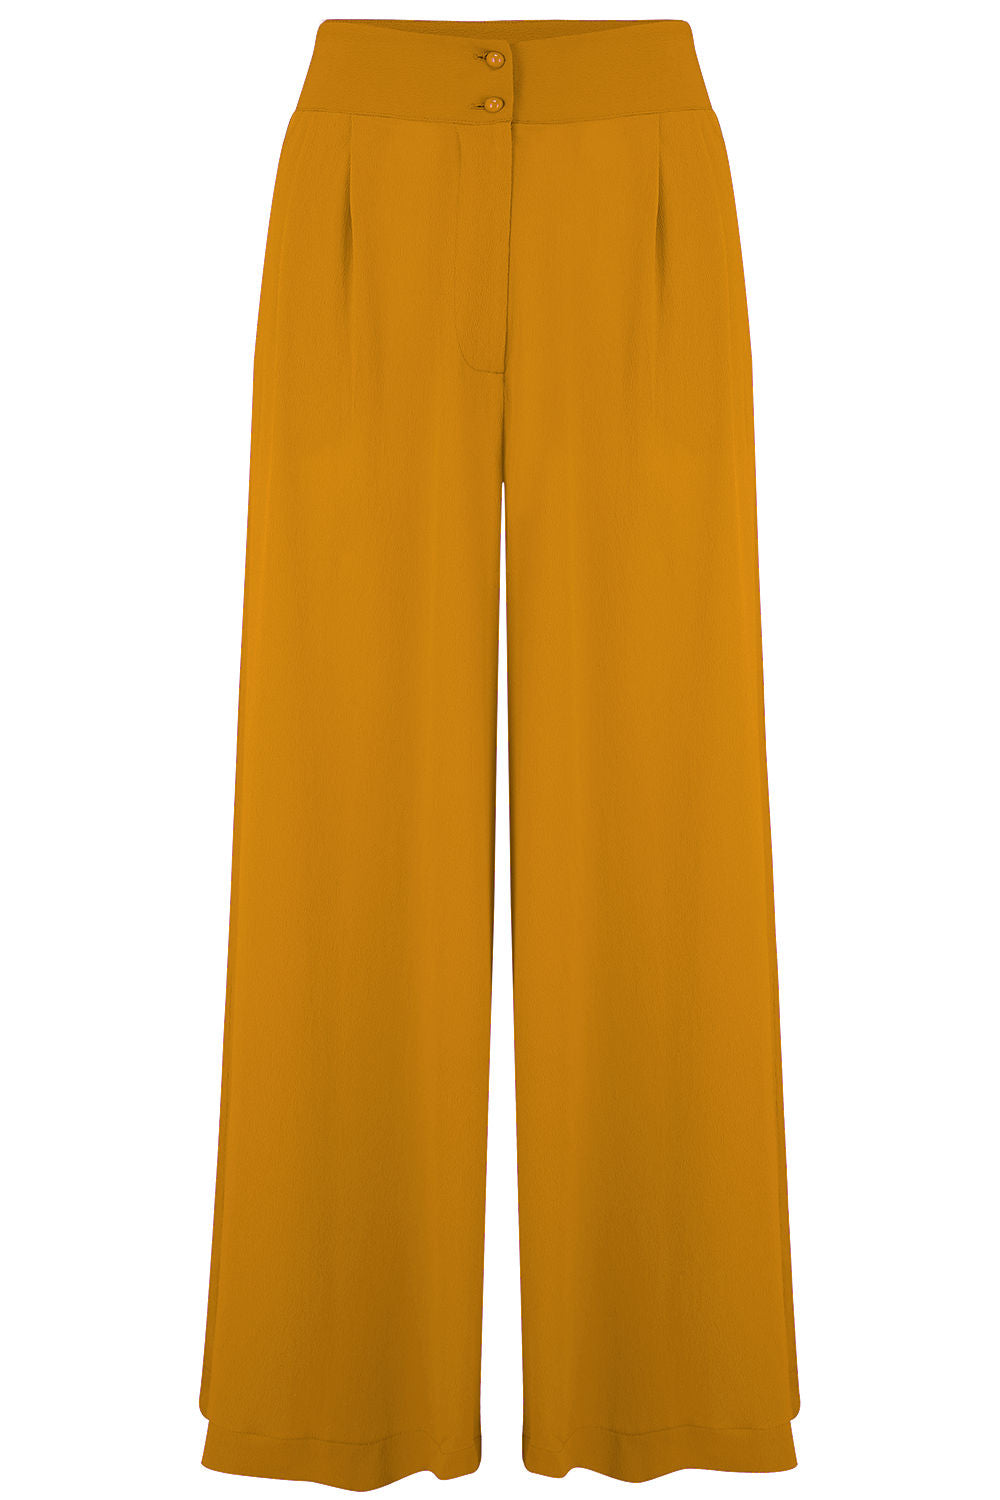 "Rock n Romance **Pre-Order** The ""Sophia"" Plazo Wide Leg Trousers in Mustard, Easy To Wear Vintage Inspired Style - RocknRomance Clothing"